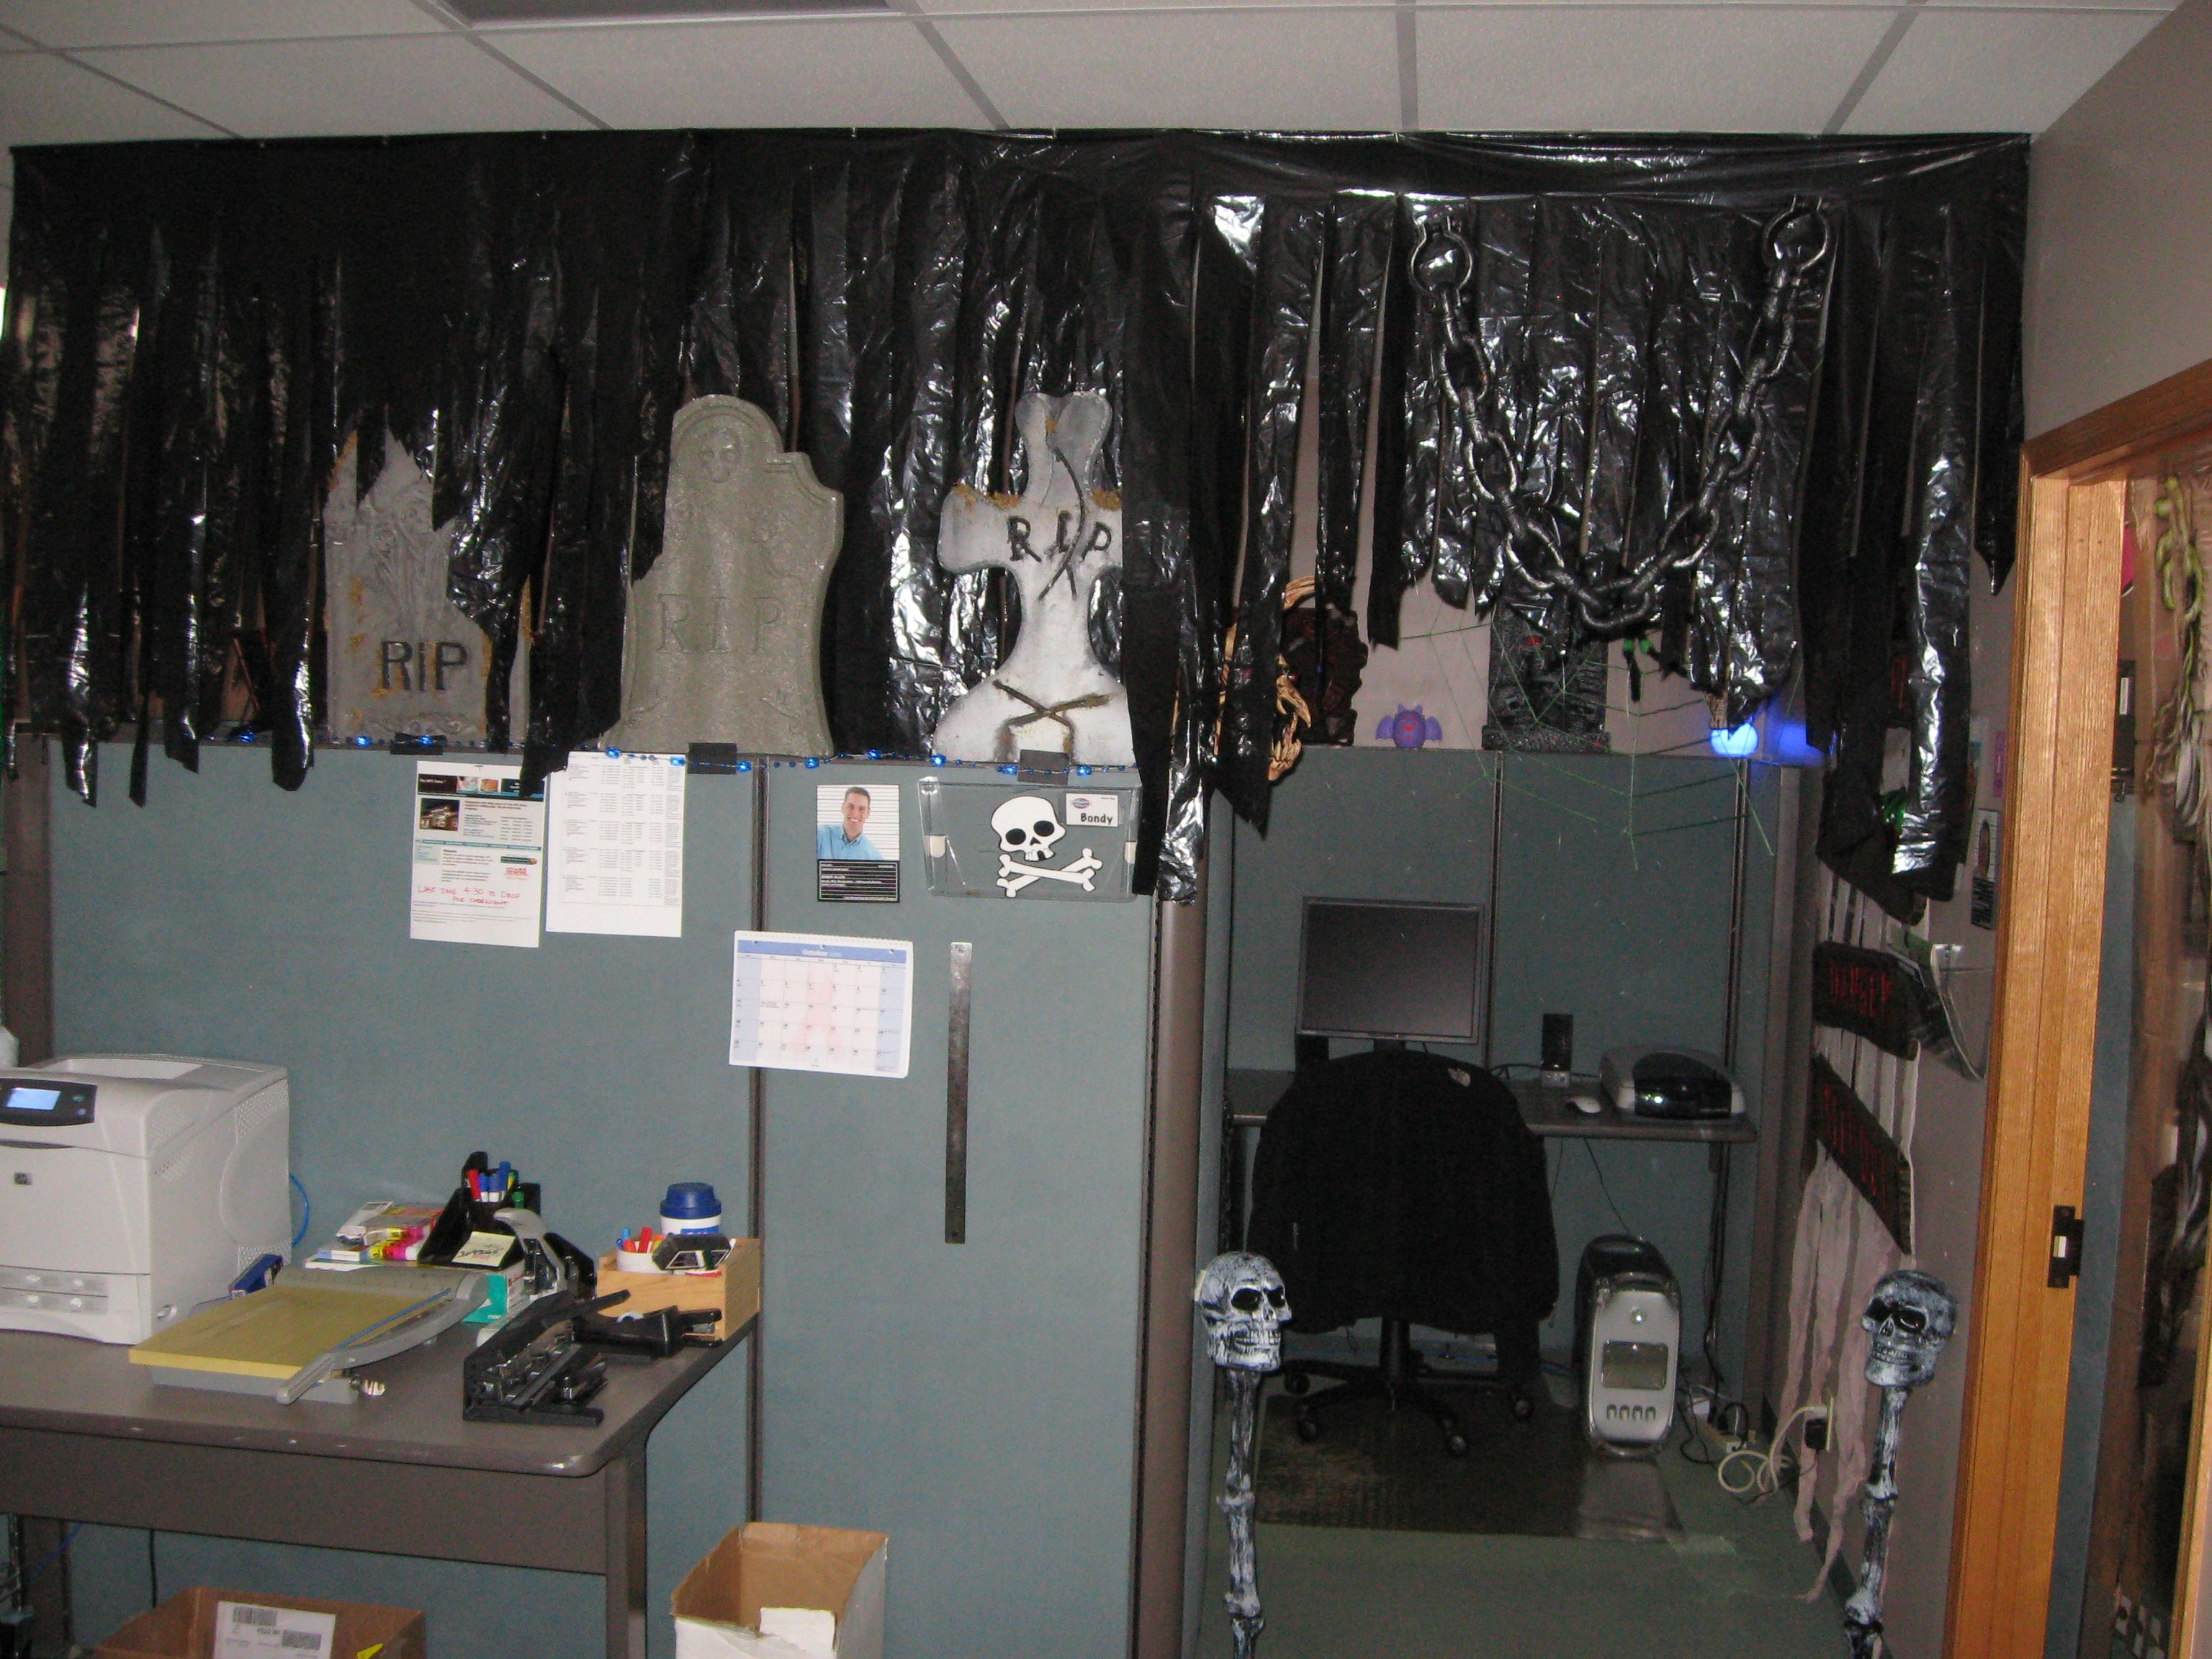 halloween ideas for the office. Good Idea For Using Black Trash Bags To Decorate With Halloween Ideas The Office T